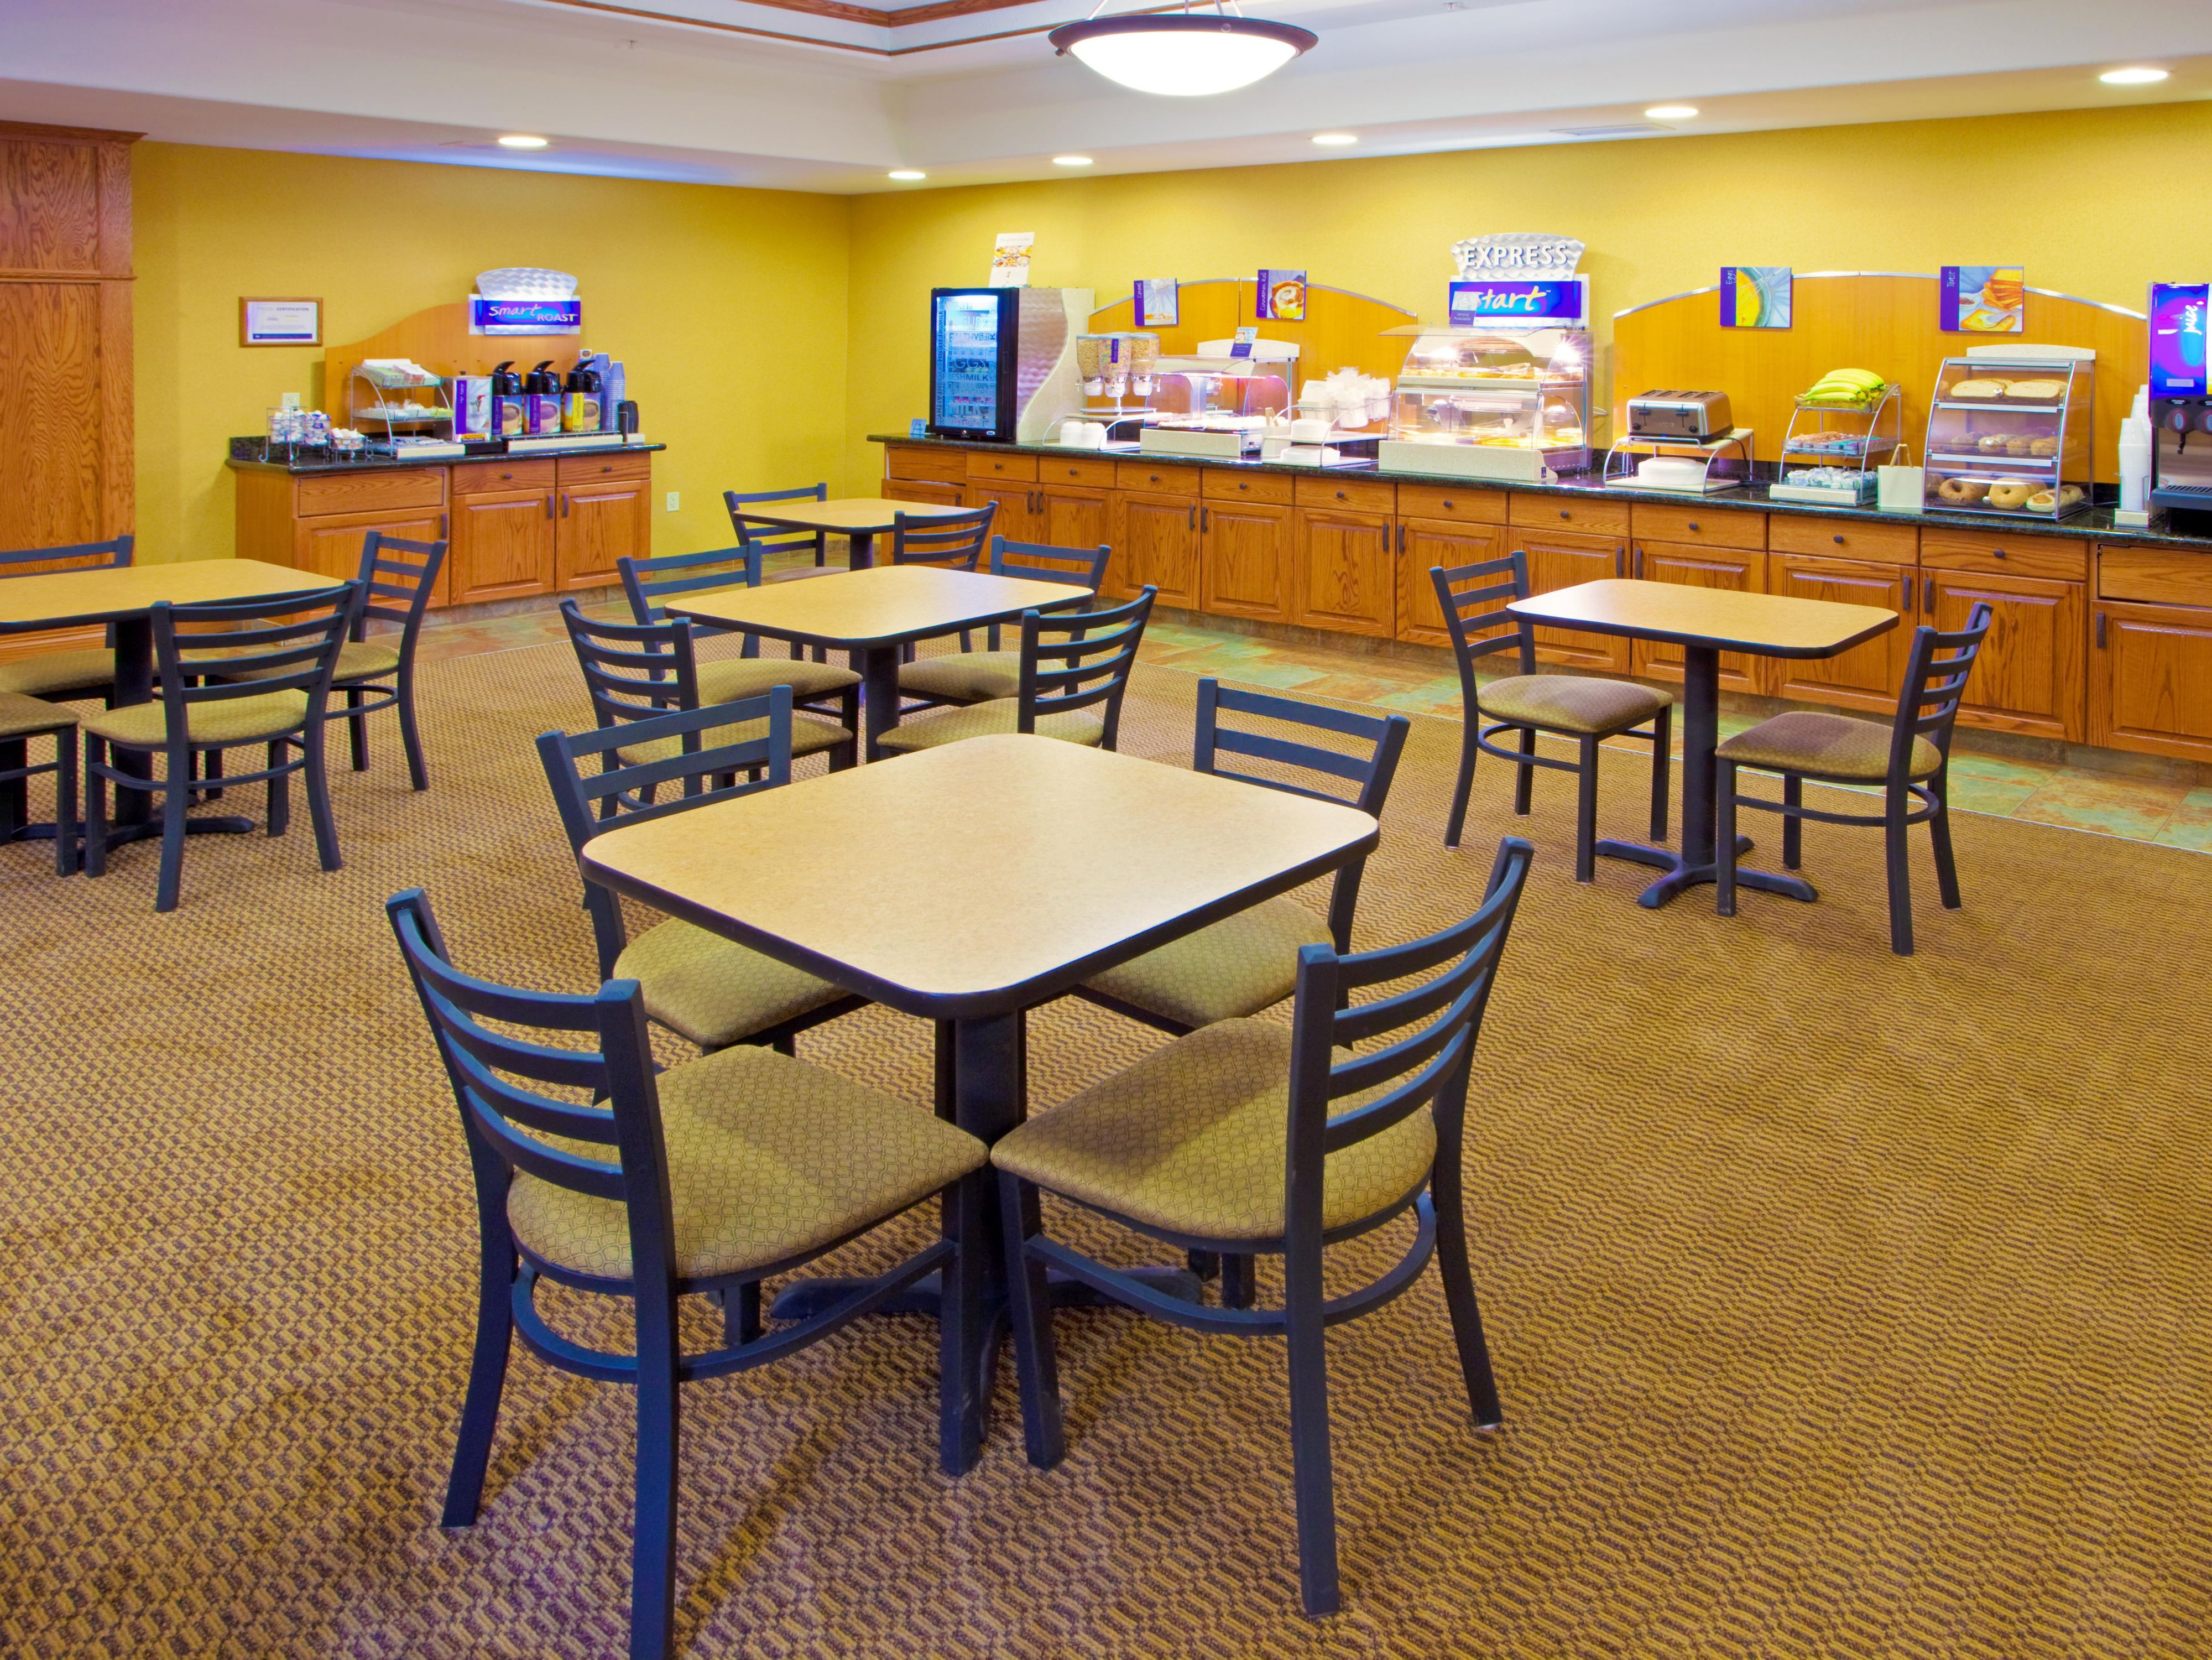 Holiday Inn Express & Suites-Weston  breakfast bar.